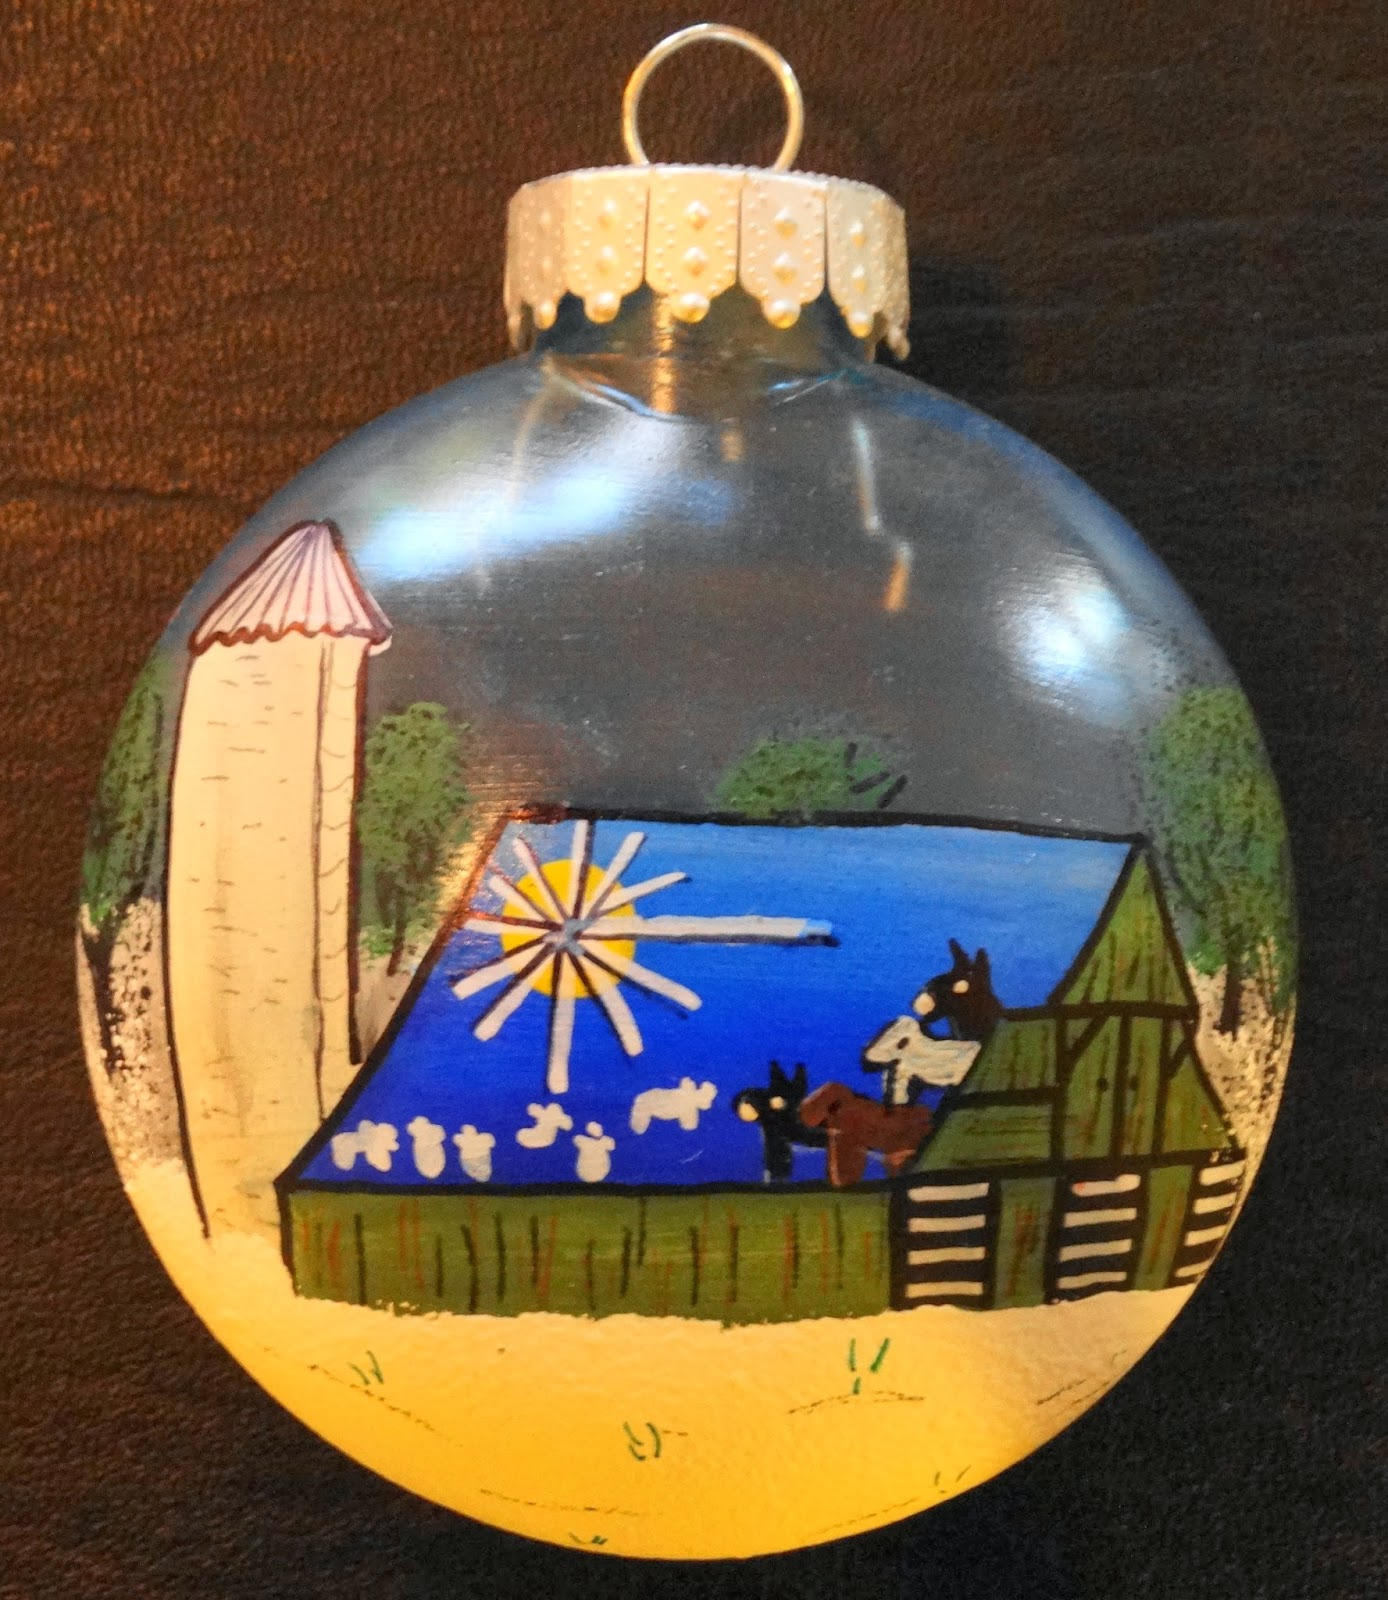 Unique Christmas Ornaments For Sale to Support College ...